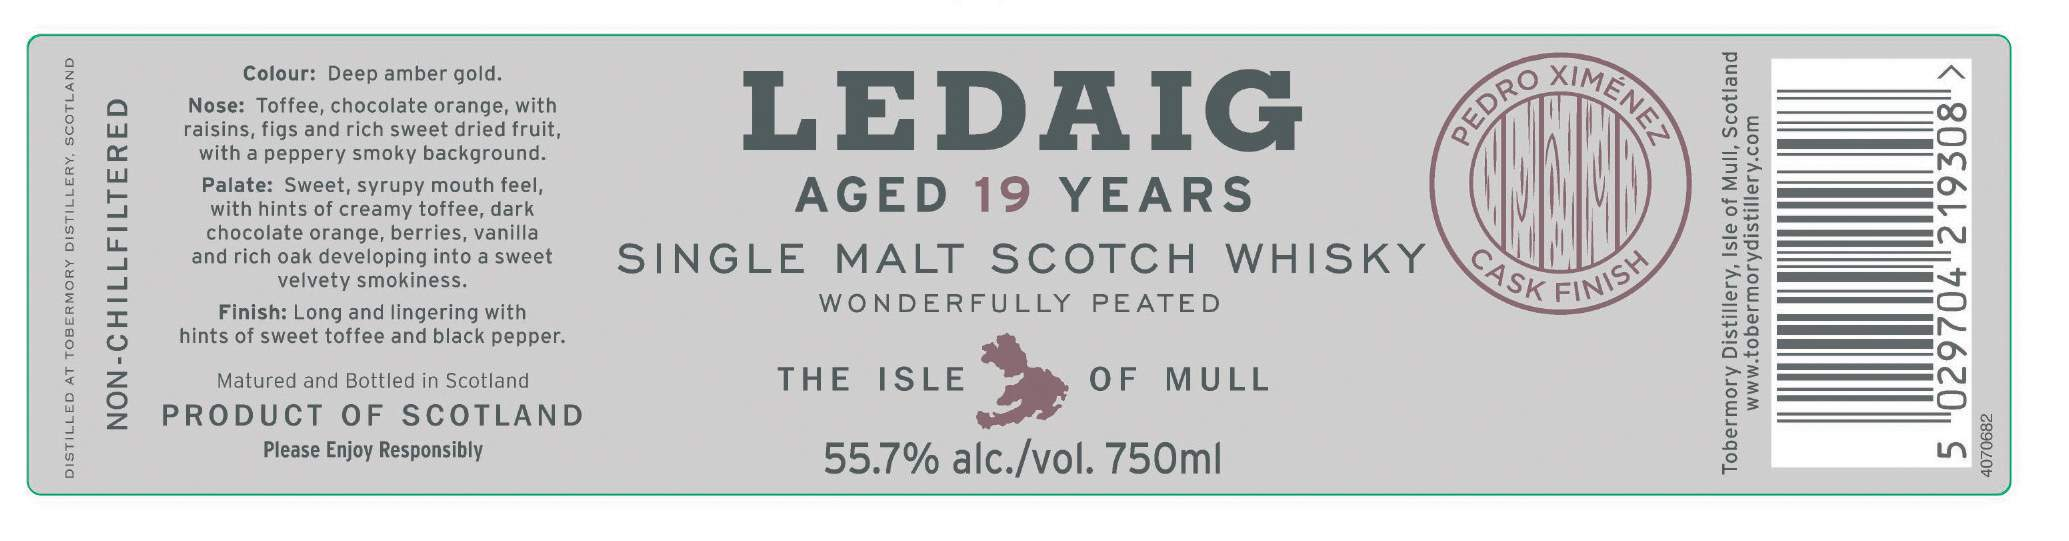 https://i0.wp.com/whiskyexperts.net/wp-content/uploads/2018/06/ledaig1.jpg?ssl=1